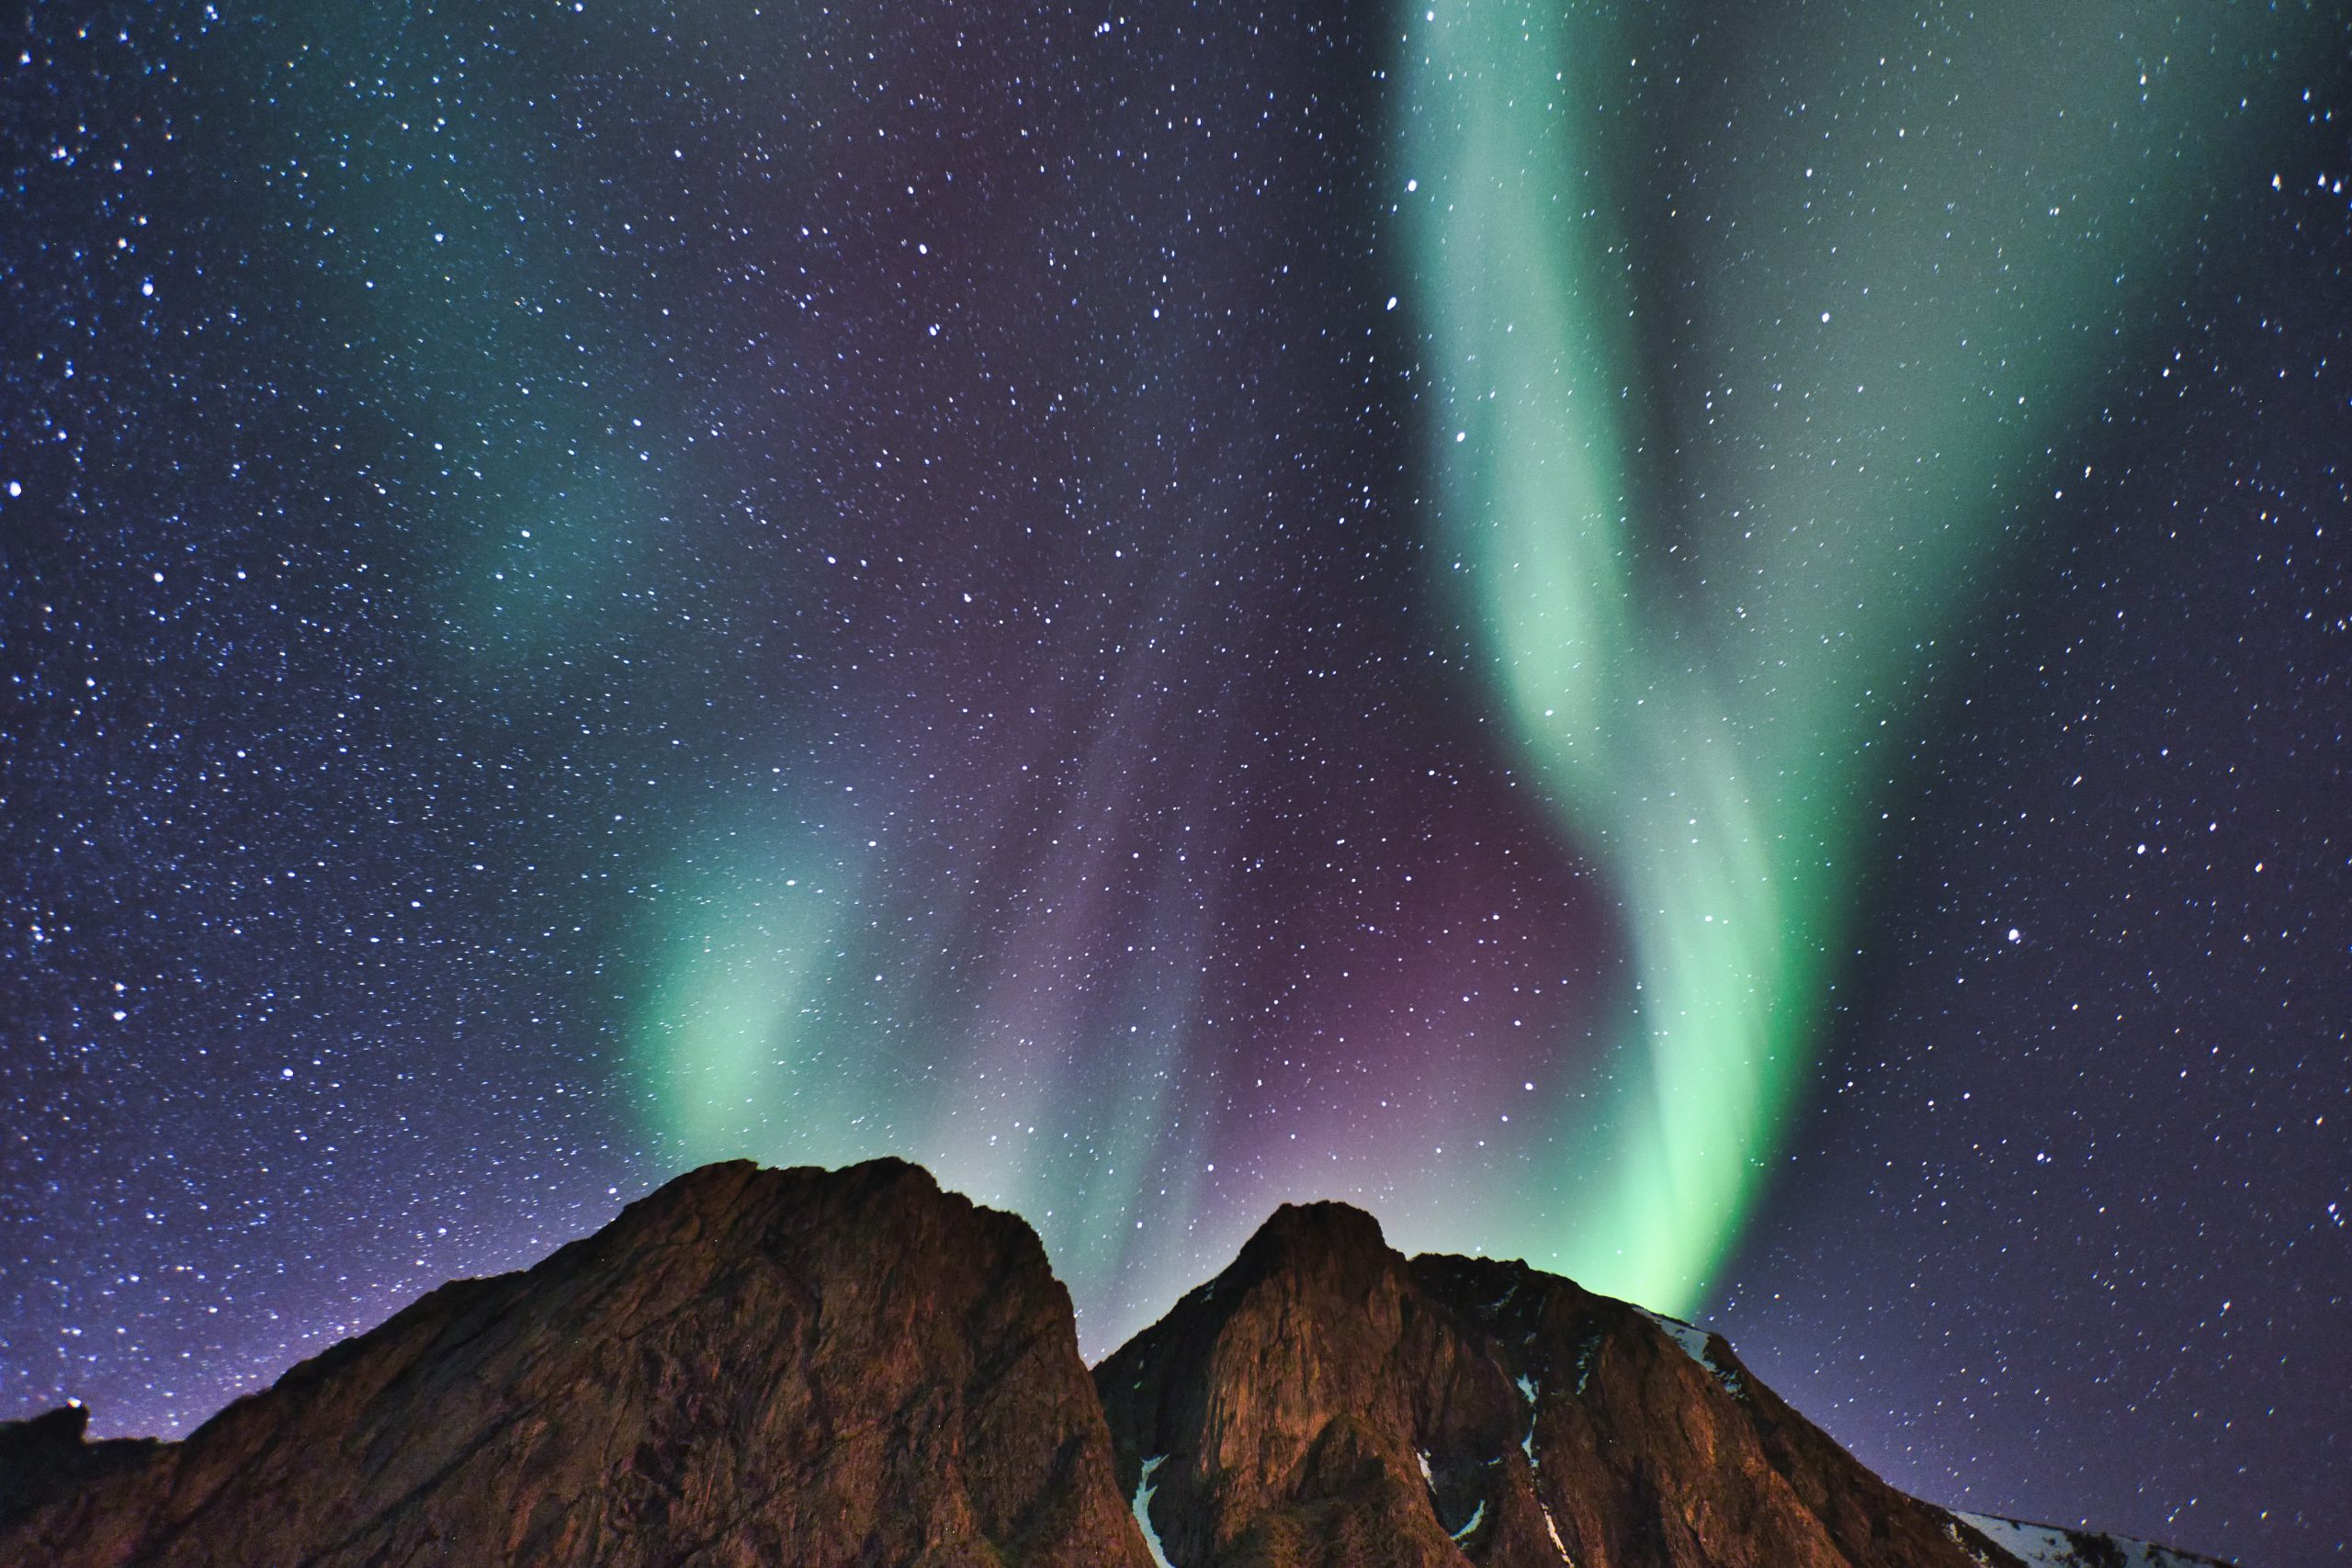 northern lights aurora over fjords mountains